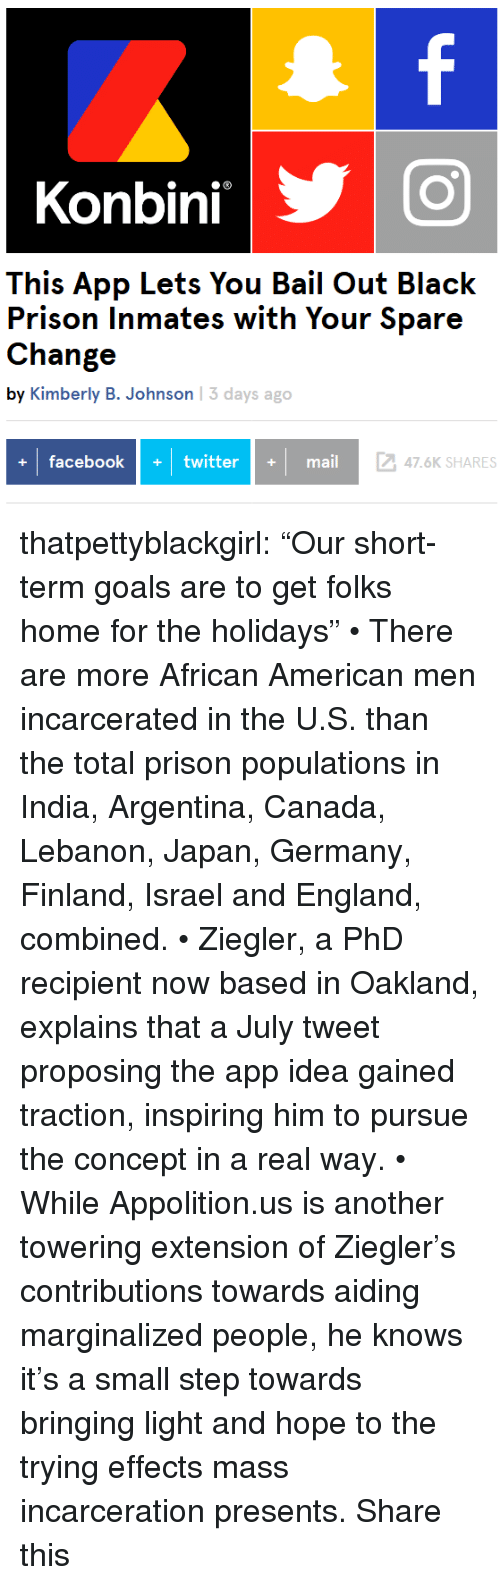 "England, Facebook, and Goals: Konbini  This App Lets You Bail Out Black  Prison Inmates with Your Spare  Change  by Kimberly B. Johnson 13 days ago  facebook+twittermail  247.6K SHARES thatpettyblackgirl: ""Our short-term goals are to get folks home for the holidays"" • There are more African American men incarcerated in the U.S. than the total prison populations in India, Argentina, Canada, Lebanon, Japan, Germany, Finland, Israel and England, combined. • Ziegler, a PhD recipient now based in Oakland, explains that a July tweet proposing the app idea gained traction, inspiring him to pursue the concept in a real way. • While Appolition.us is another towering extension of Ziegler's contributions towards aiding marginalized people, he knows it's a small step towards bringing light and hope to the trying effects mass incarceration presents.  Share this"